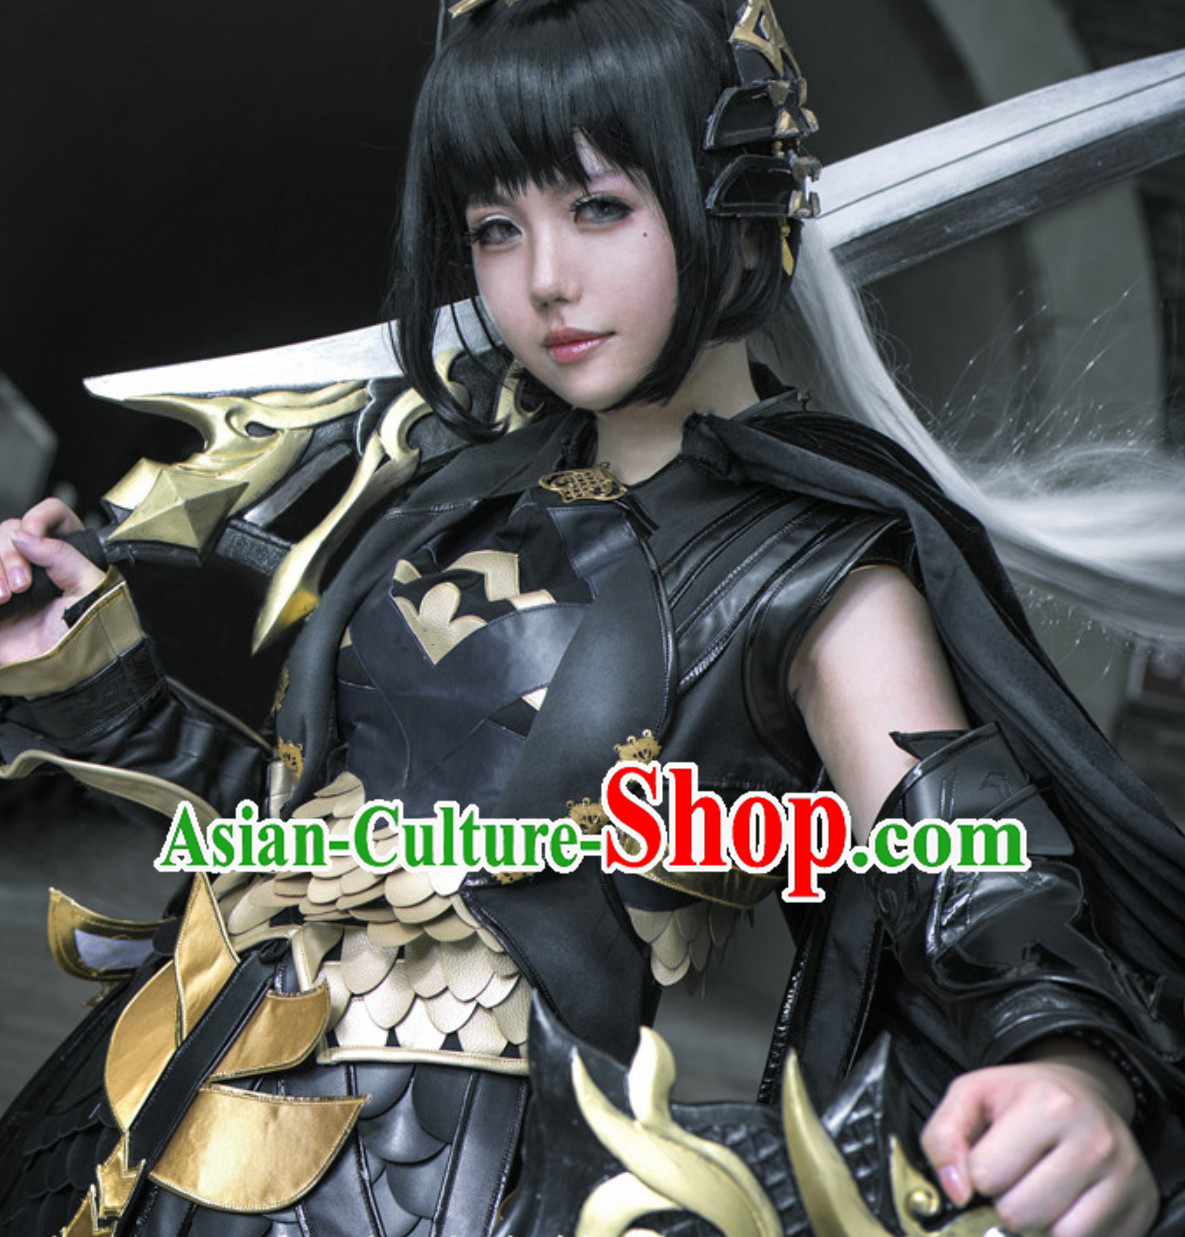 Asian Warrior Chinese Japanese Style Sexy Superhero Costume